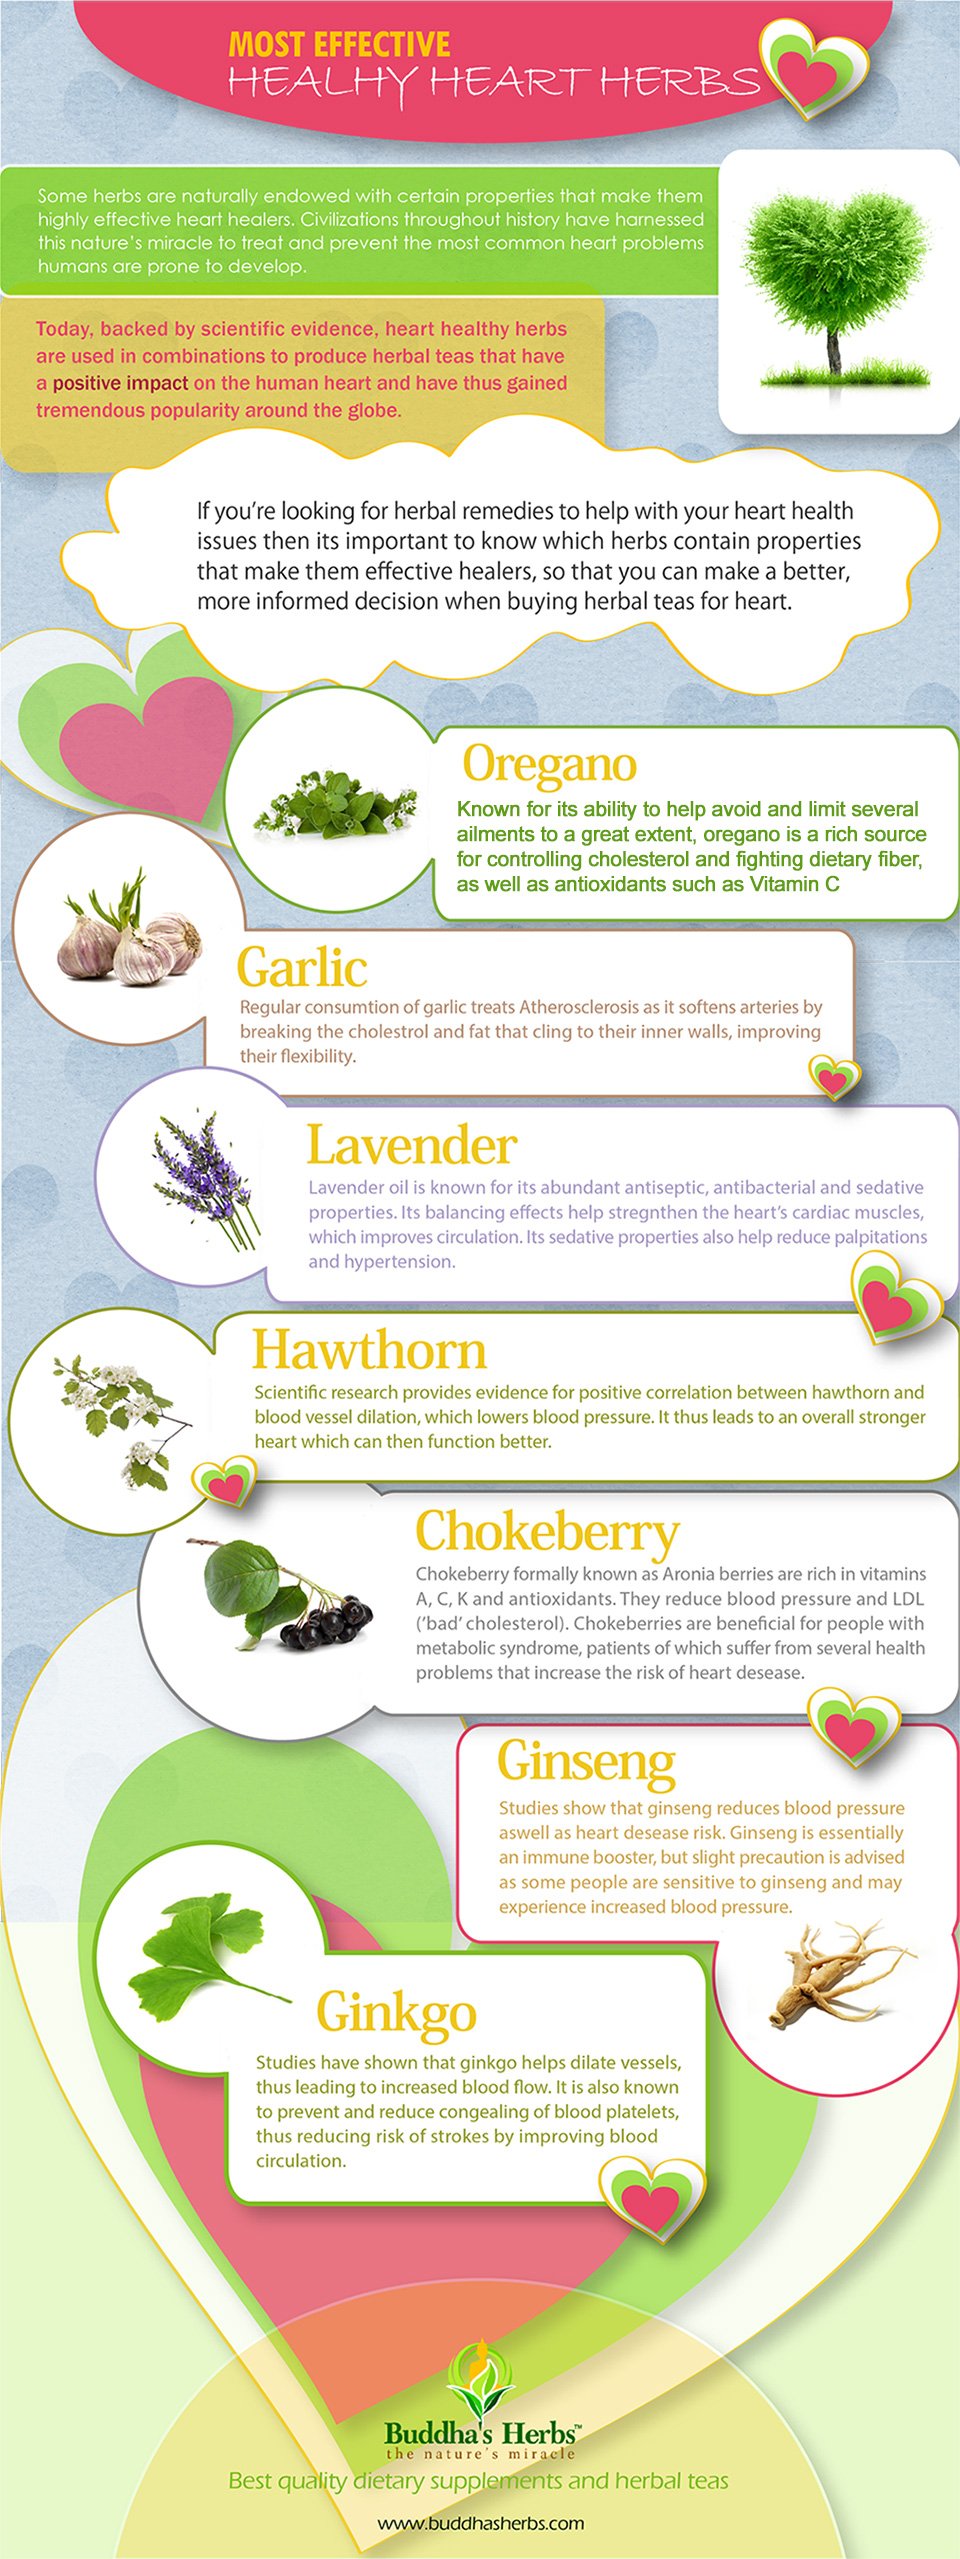 Herbs-heart-health-infographic